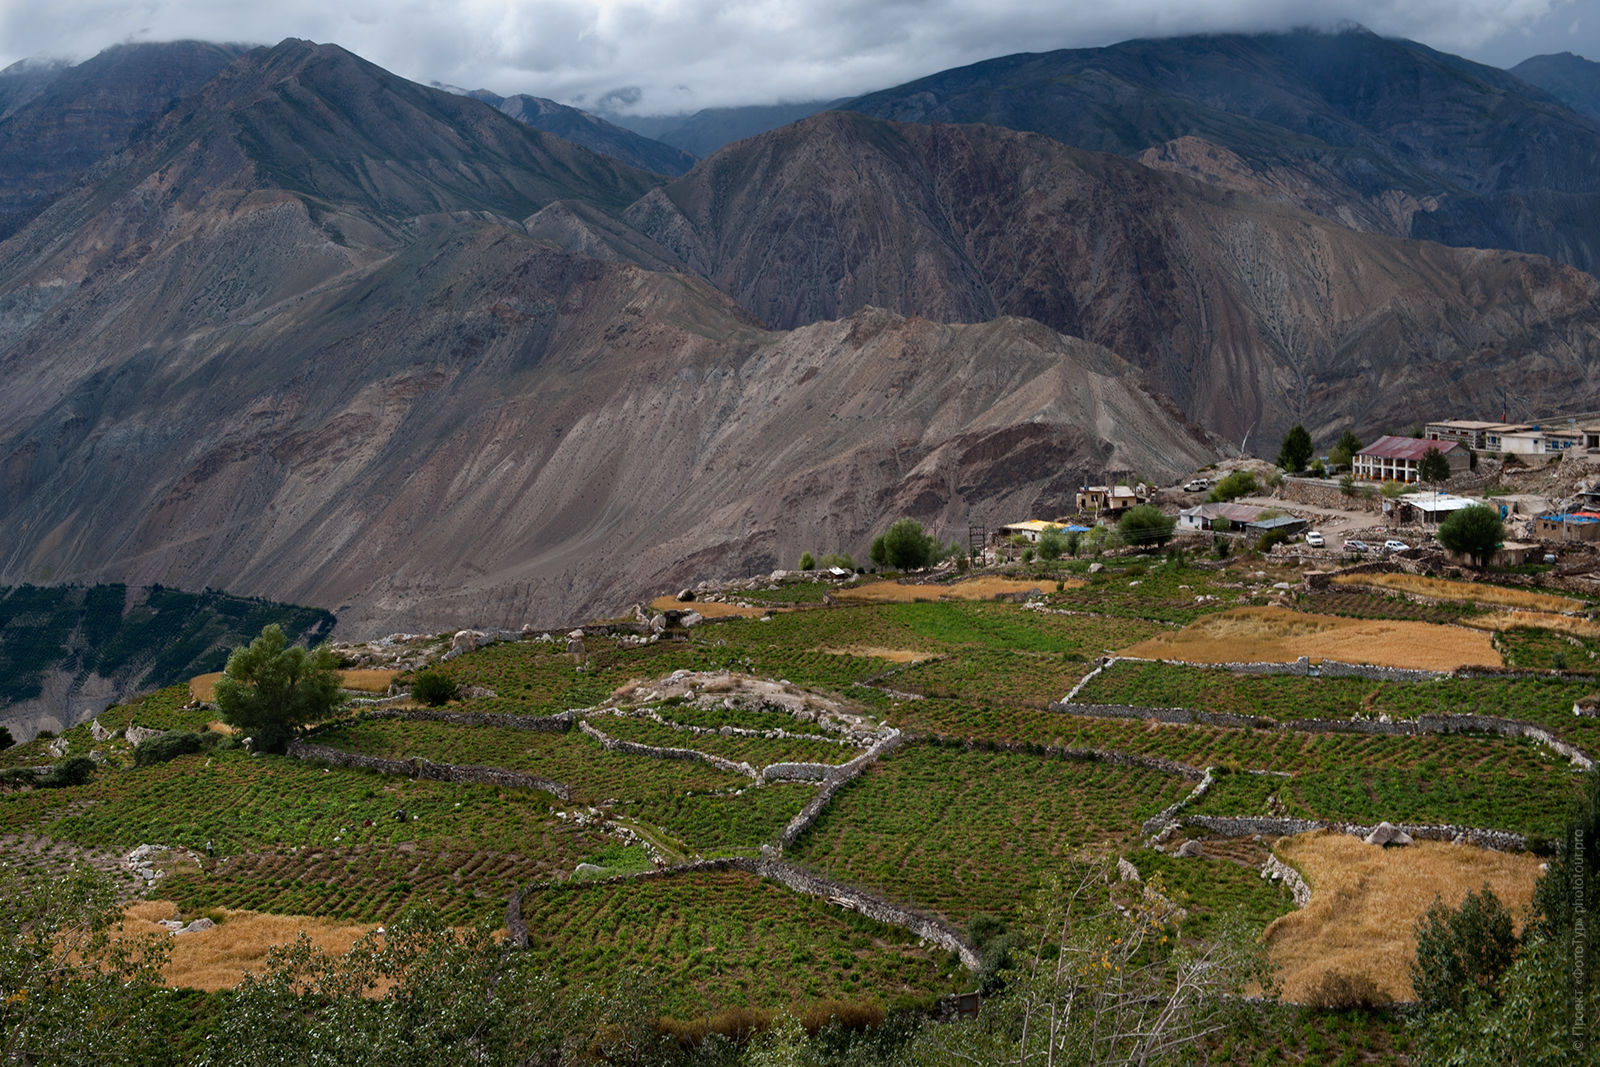 The alpine village of Spiti Valley. Tour of the Spiti Valley, Little Tibet, India, in August 2017.